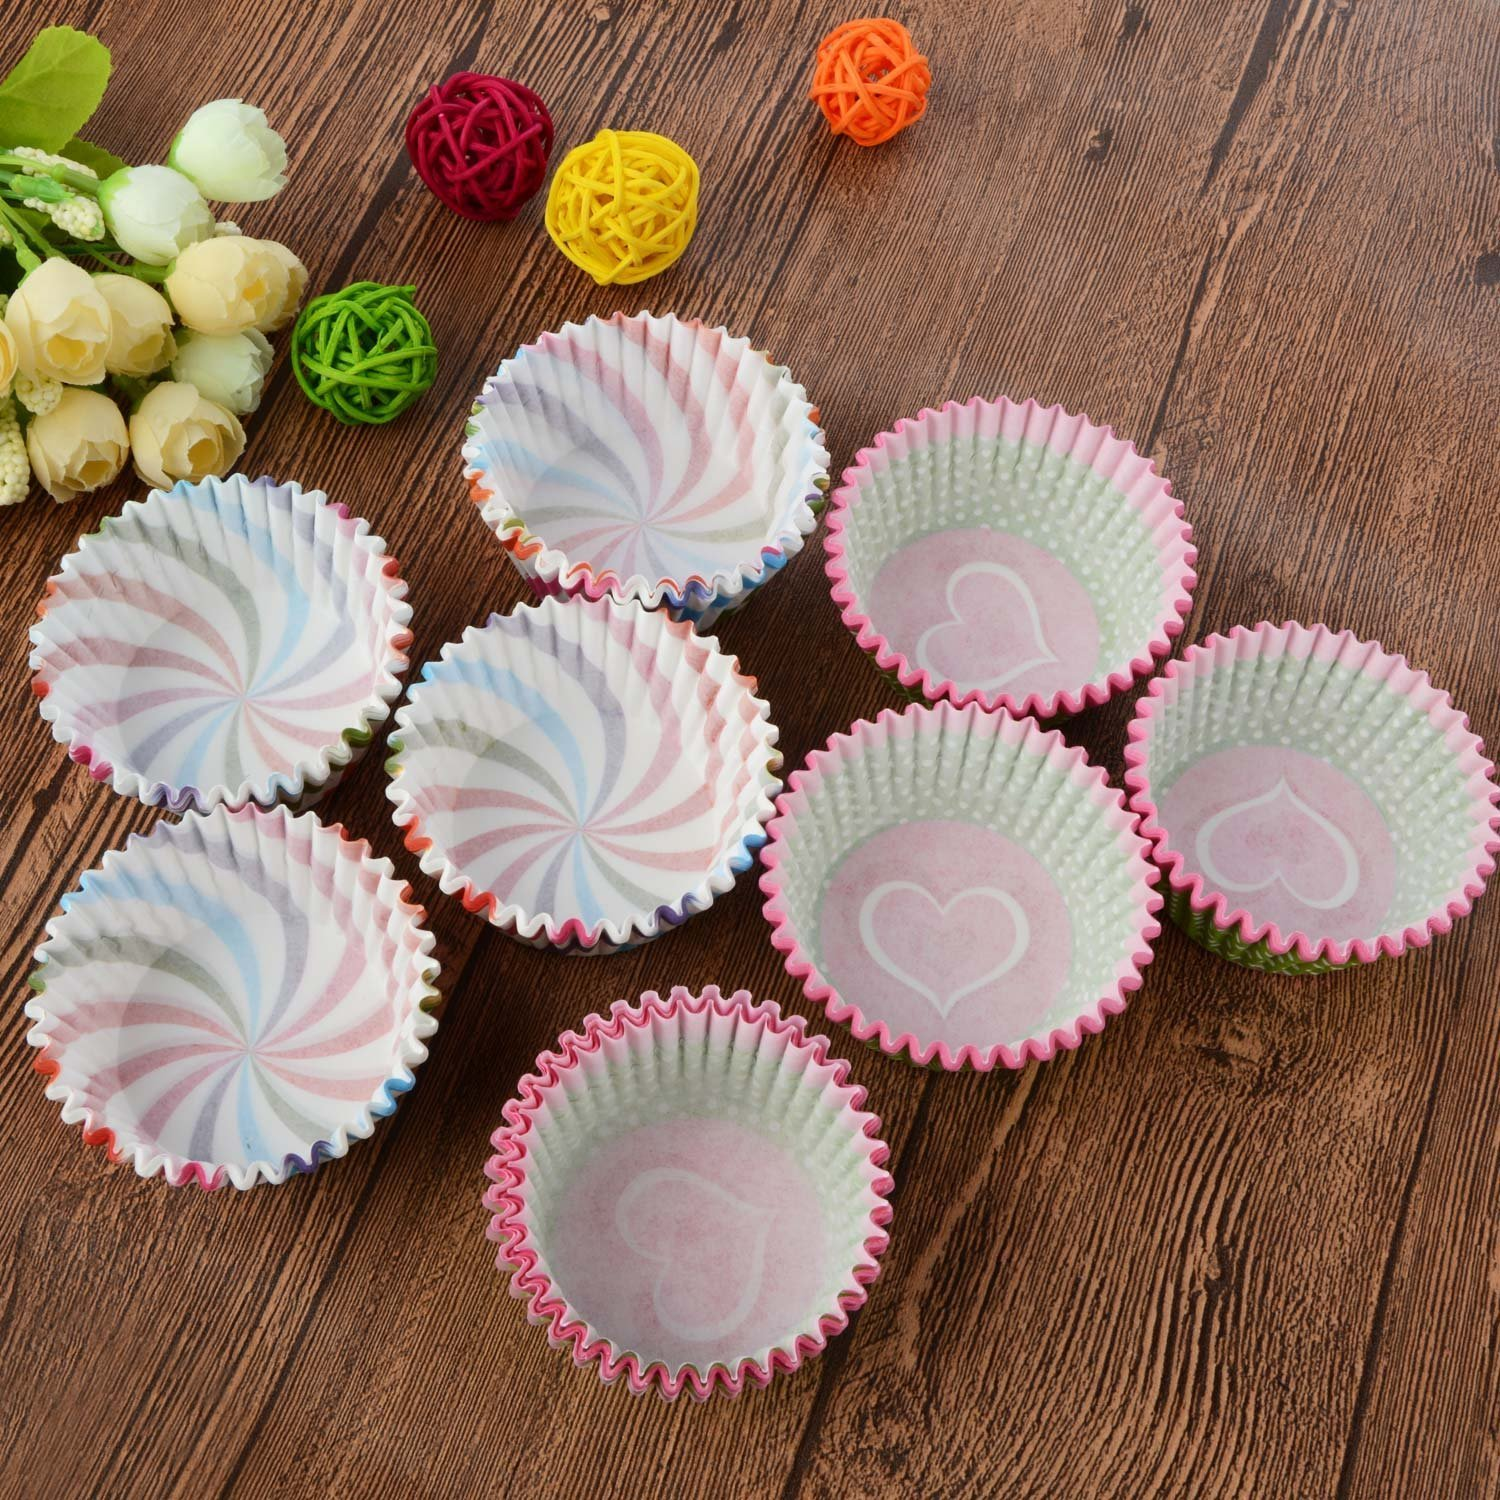 Standard Paper Baking Cases for Cupcakes for Holiday Parties Birthday Weddings Pack of 100 Random Pattern 7(D)*3(H)CM